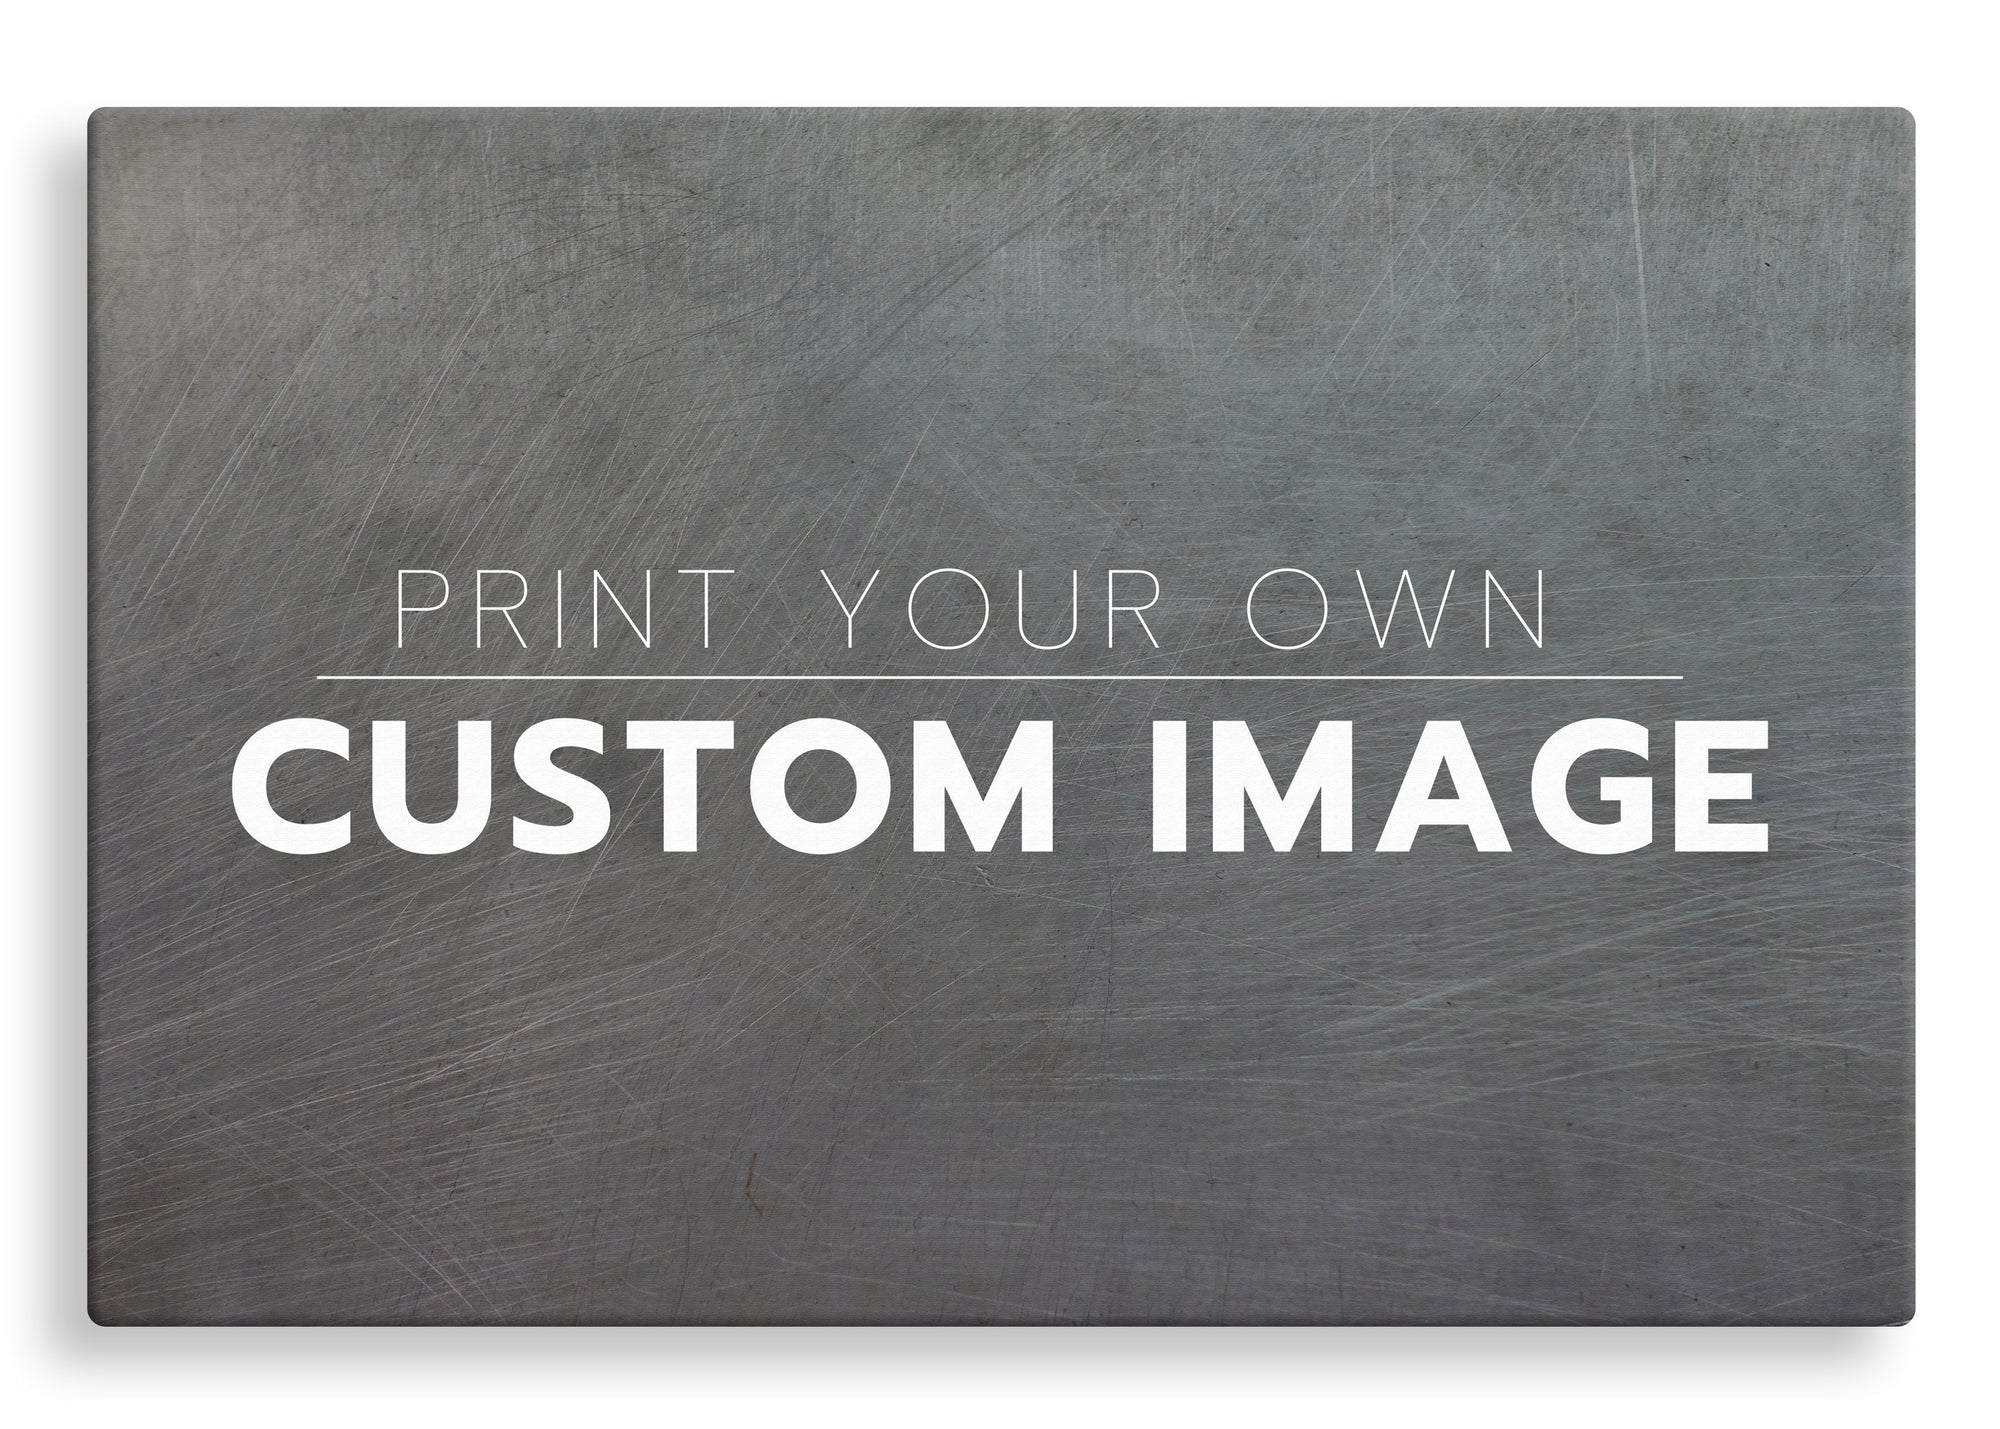 Print Your Own Custom Image